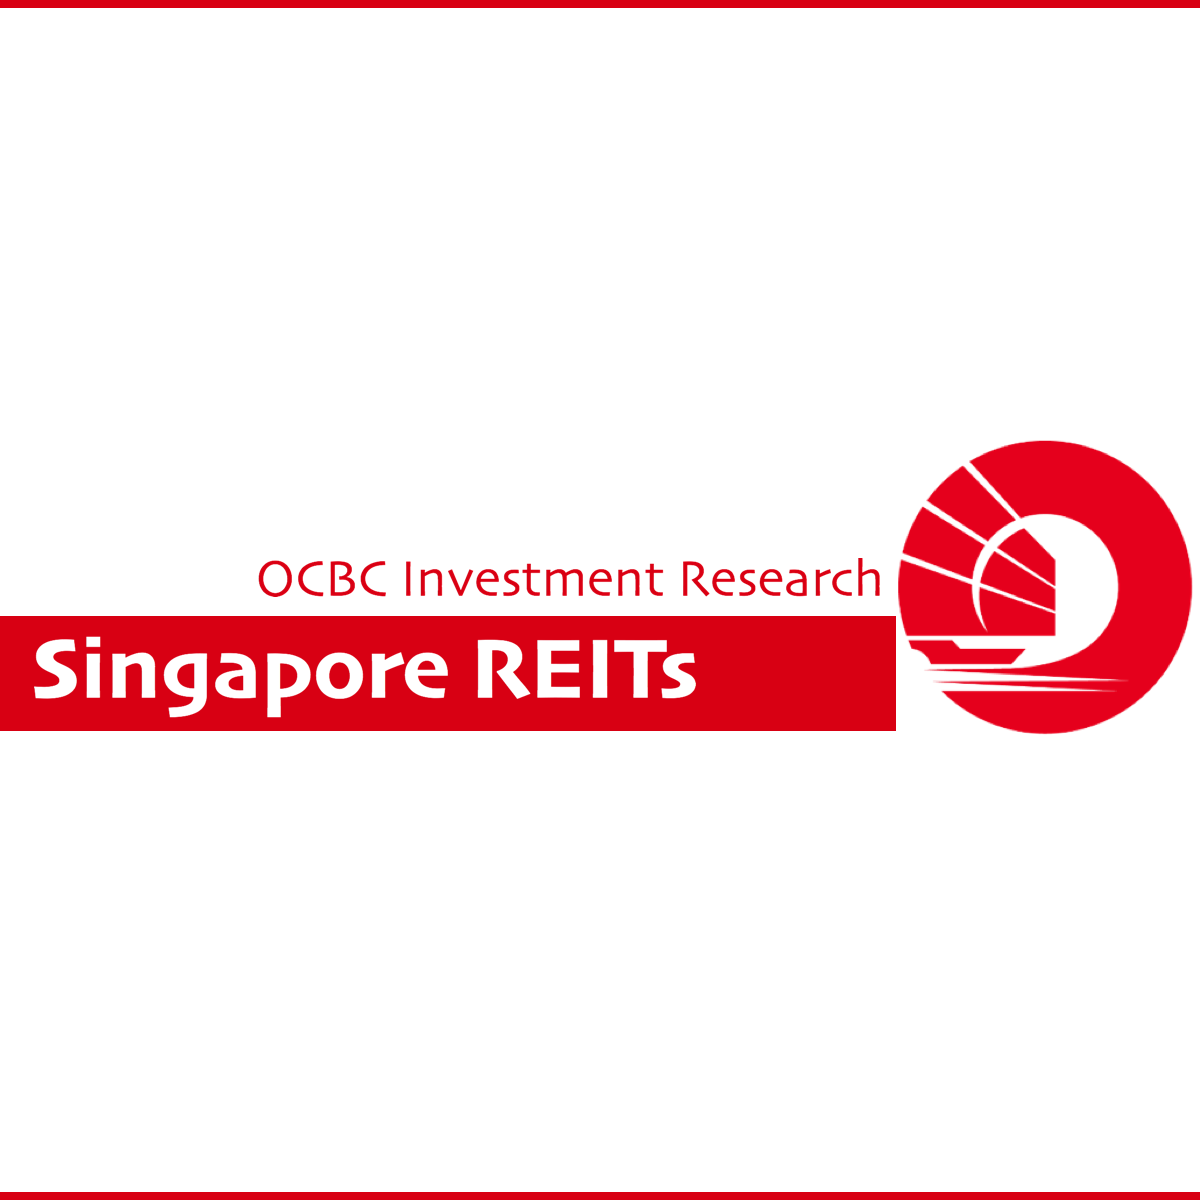 Singapore REITs - OCBC Investment 2018-05-23: Rising Yields Negate Improving Industry Fundamentals